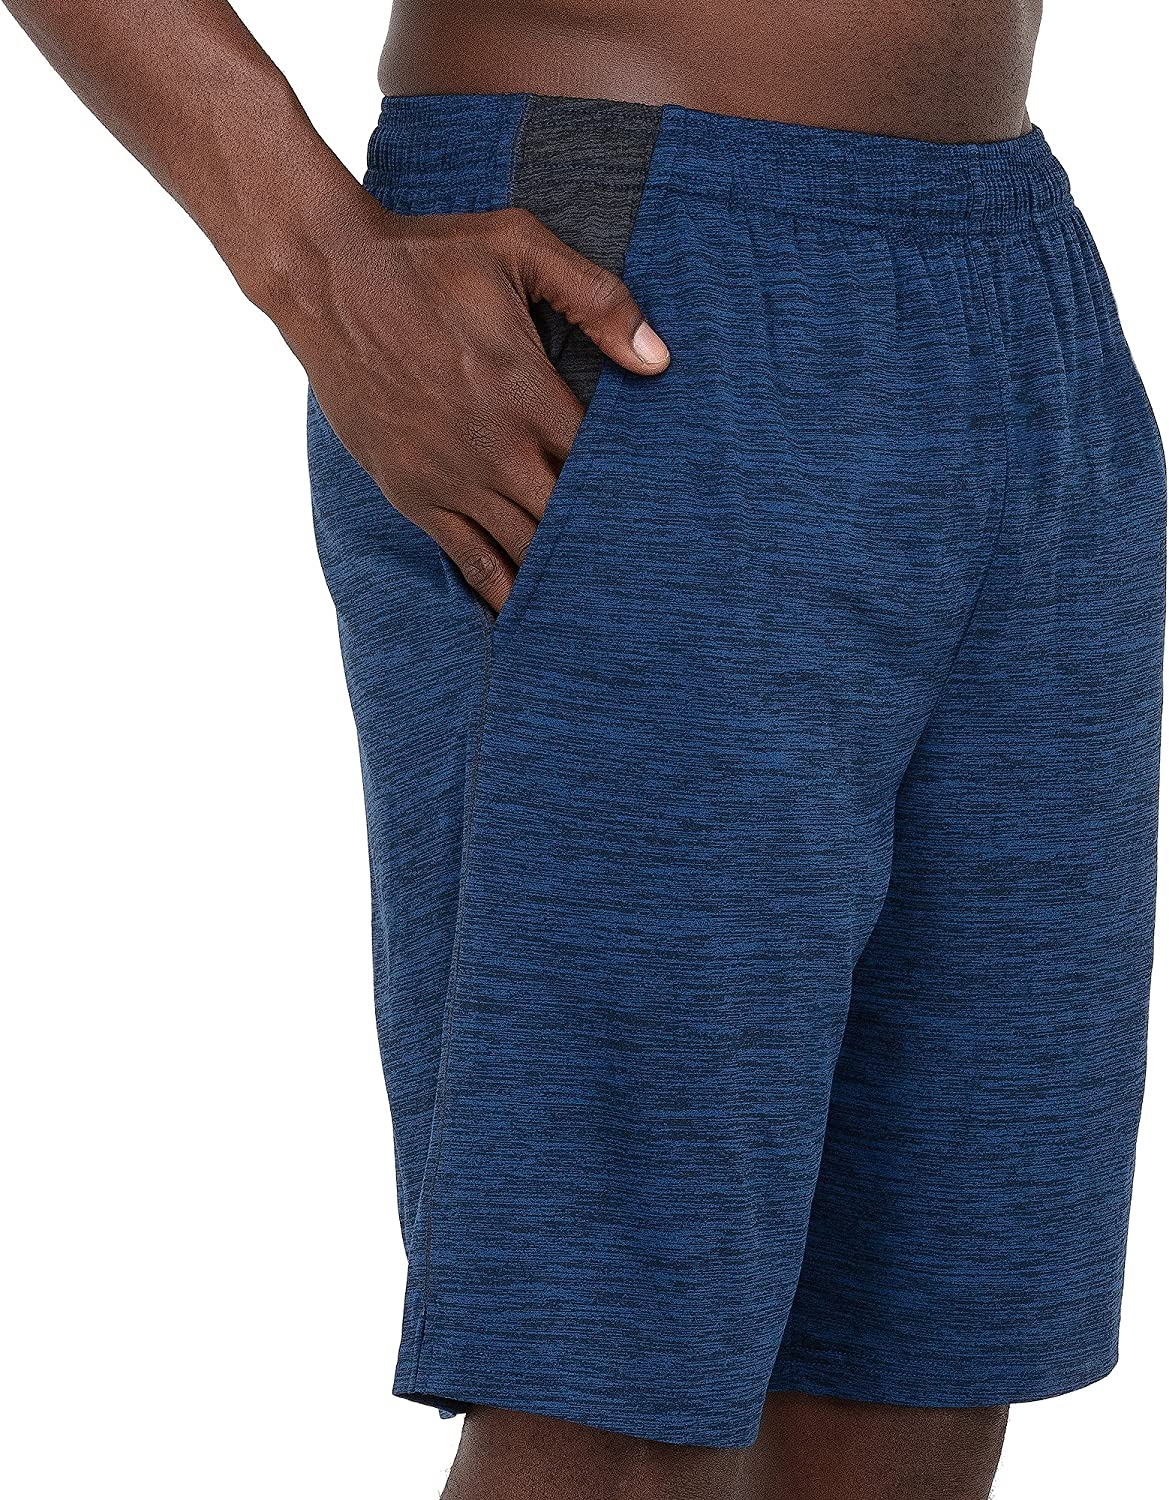 Layer 8 Mens Short Quickdry Athletic 10 Inch Inseam Extra Mile Short with Two Side Pockets